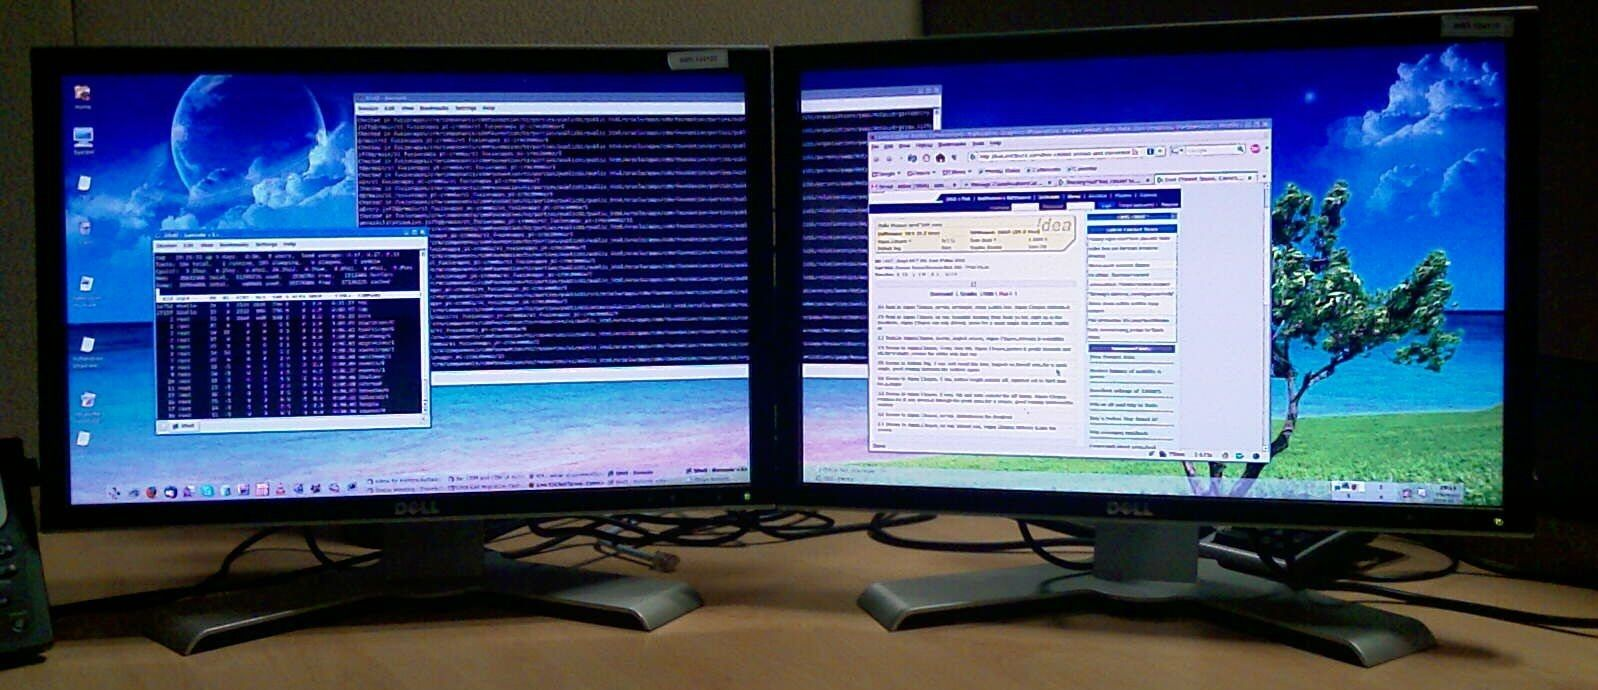 How To Set Different Wallpapers On A DualMonitor Setup On